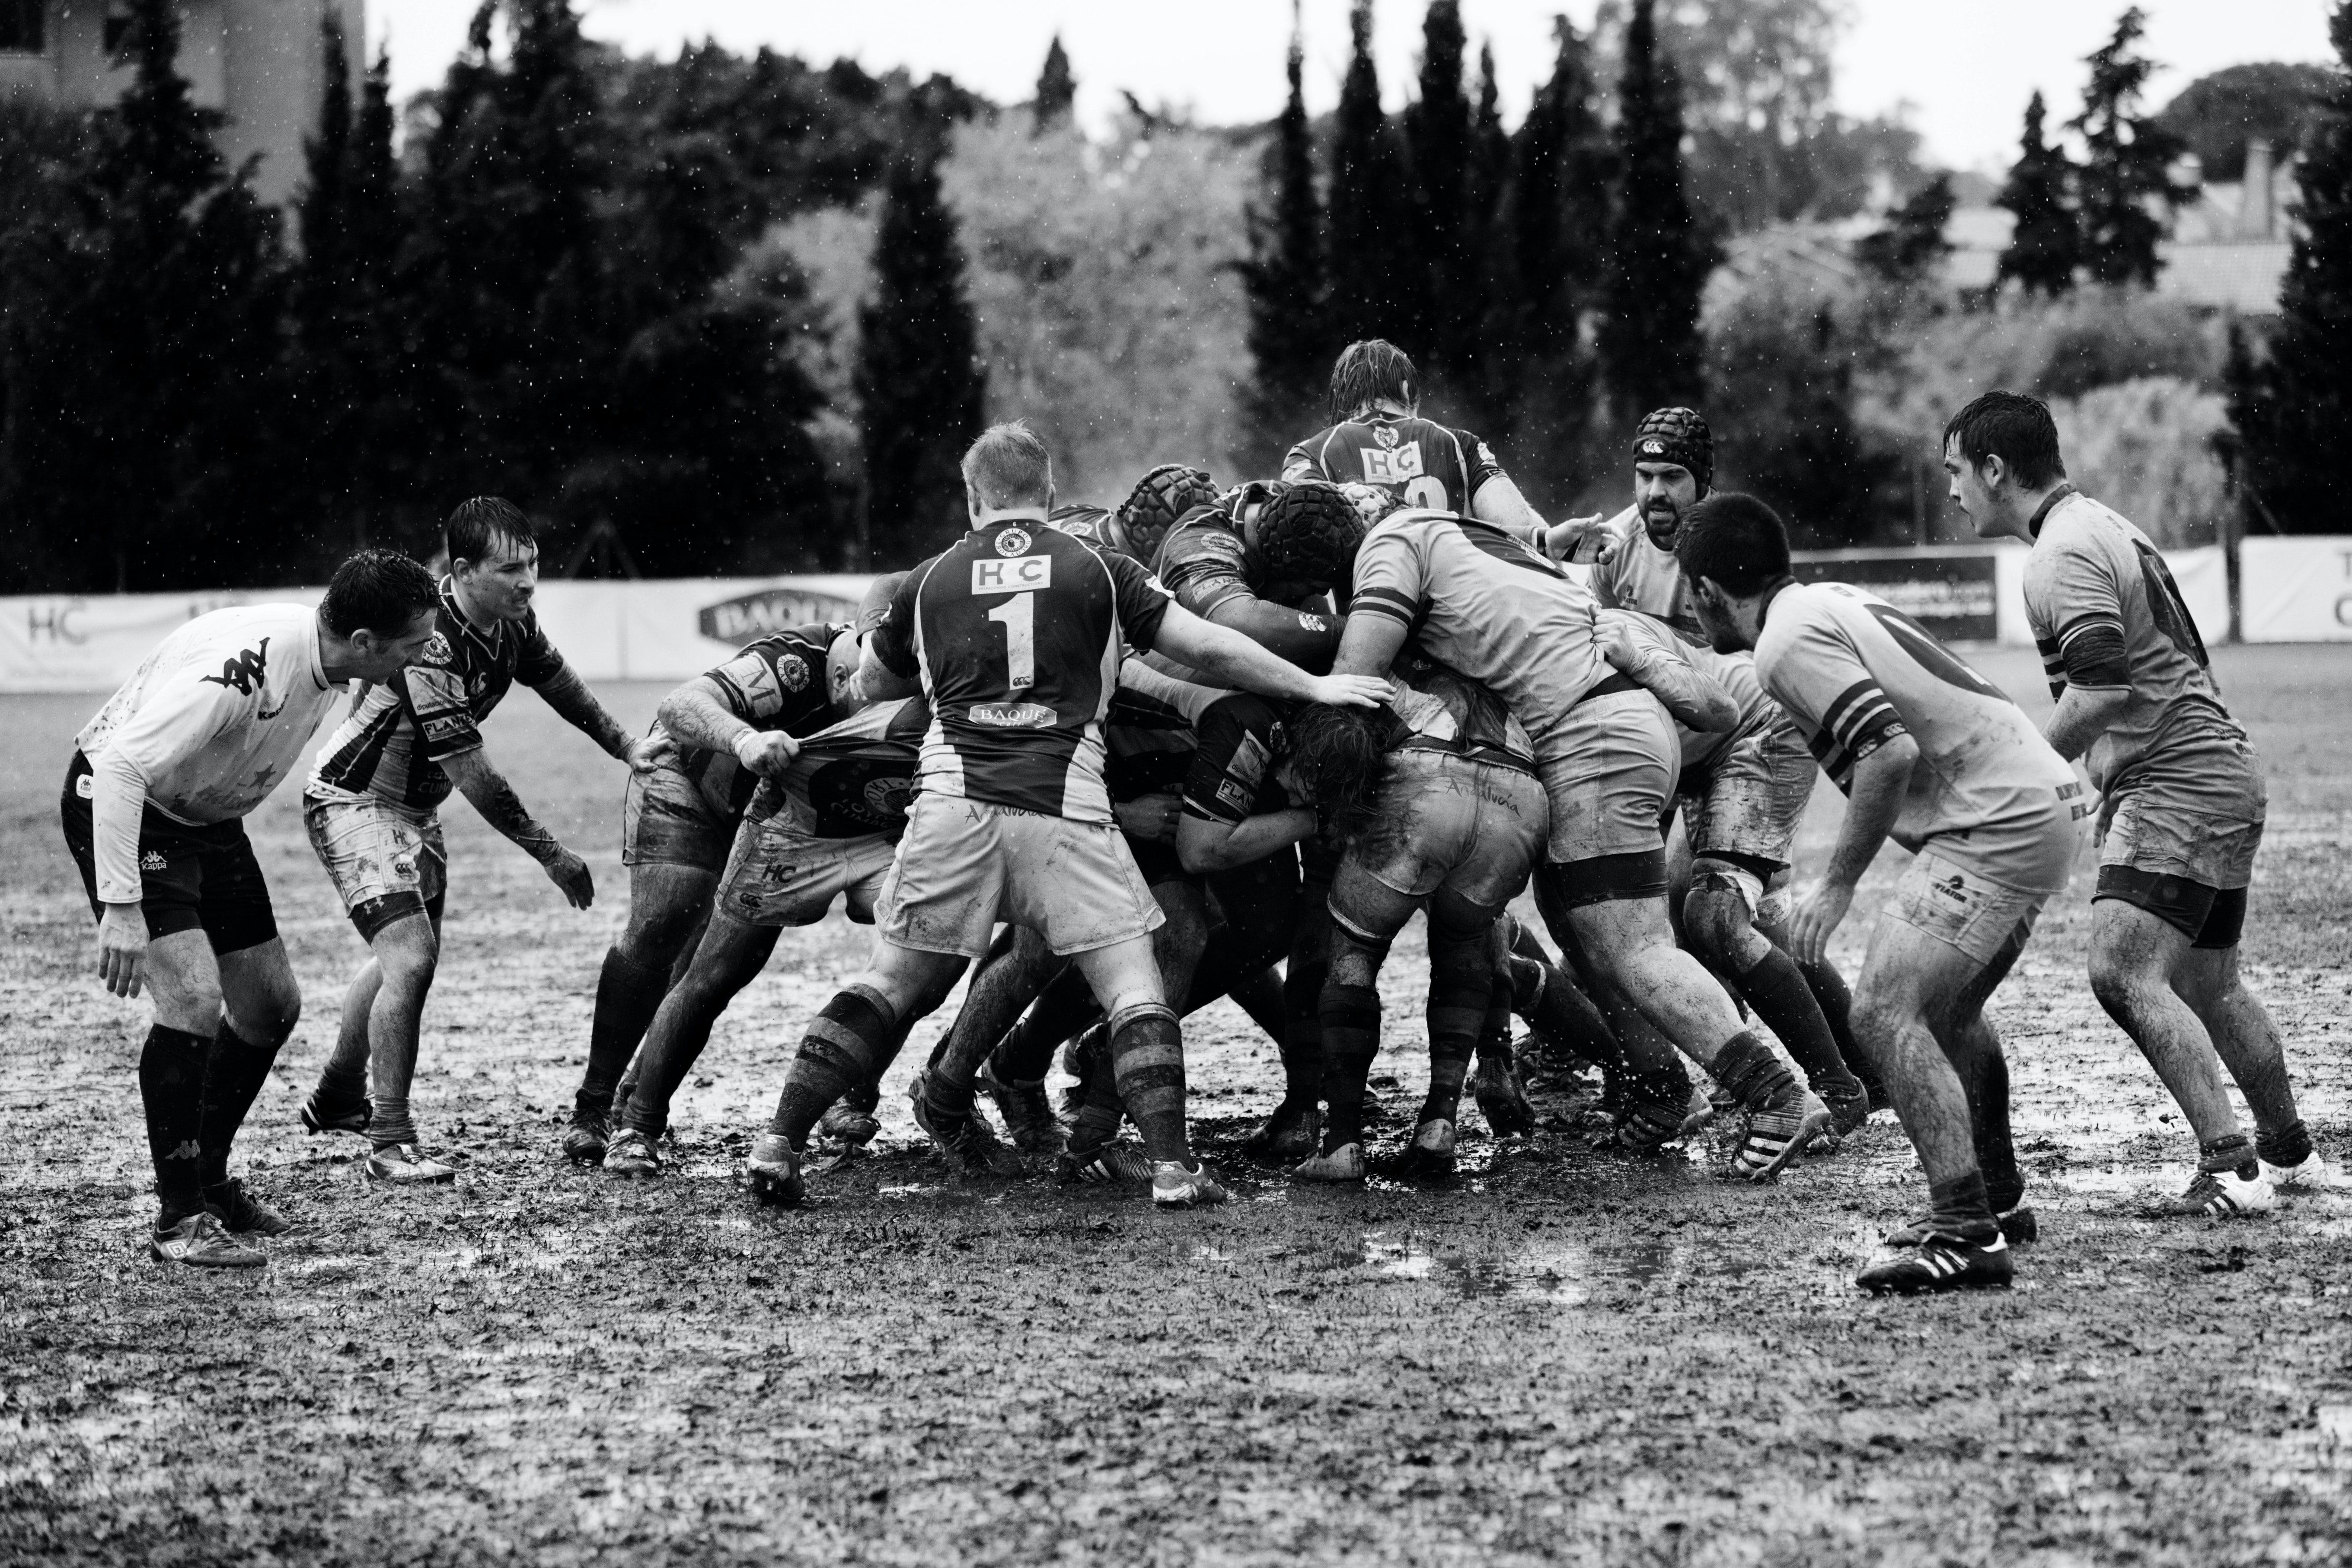 grayscale photography of men playing rugby on muddy land